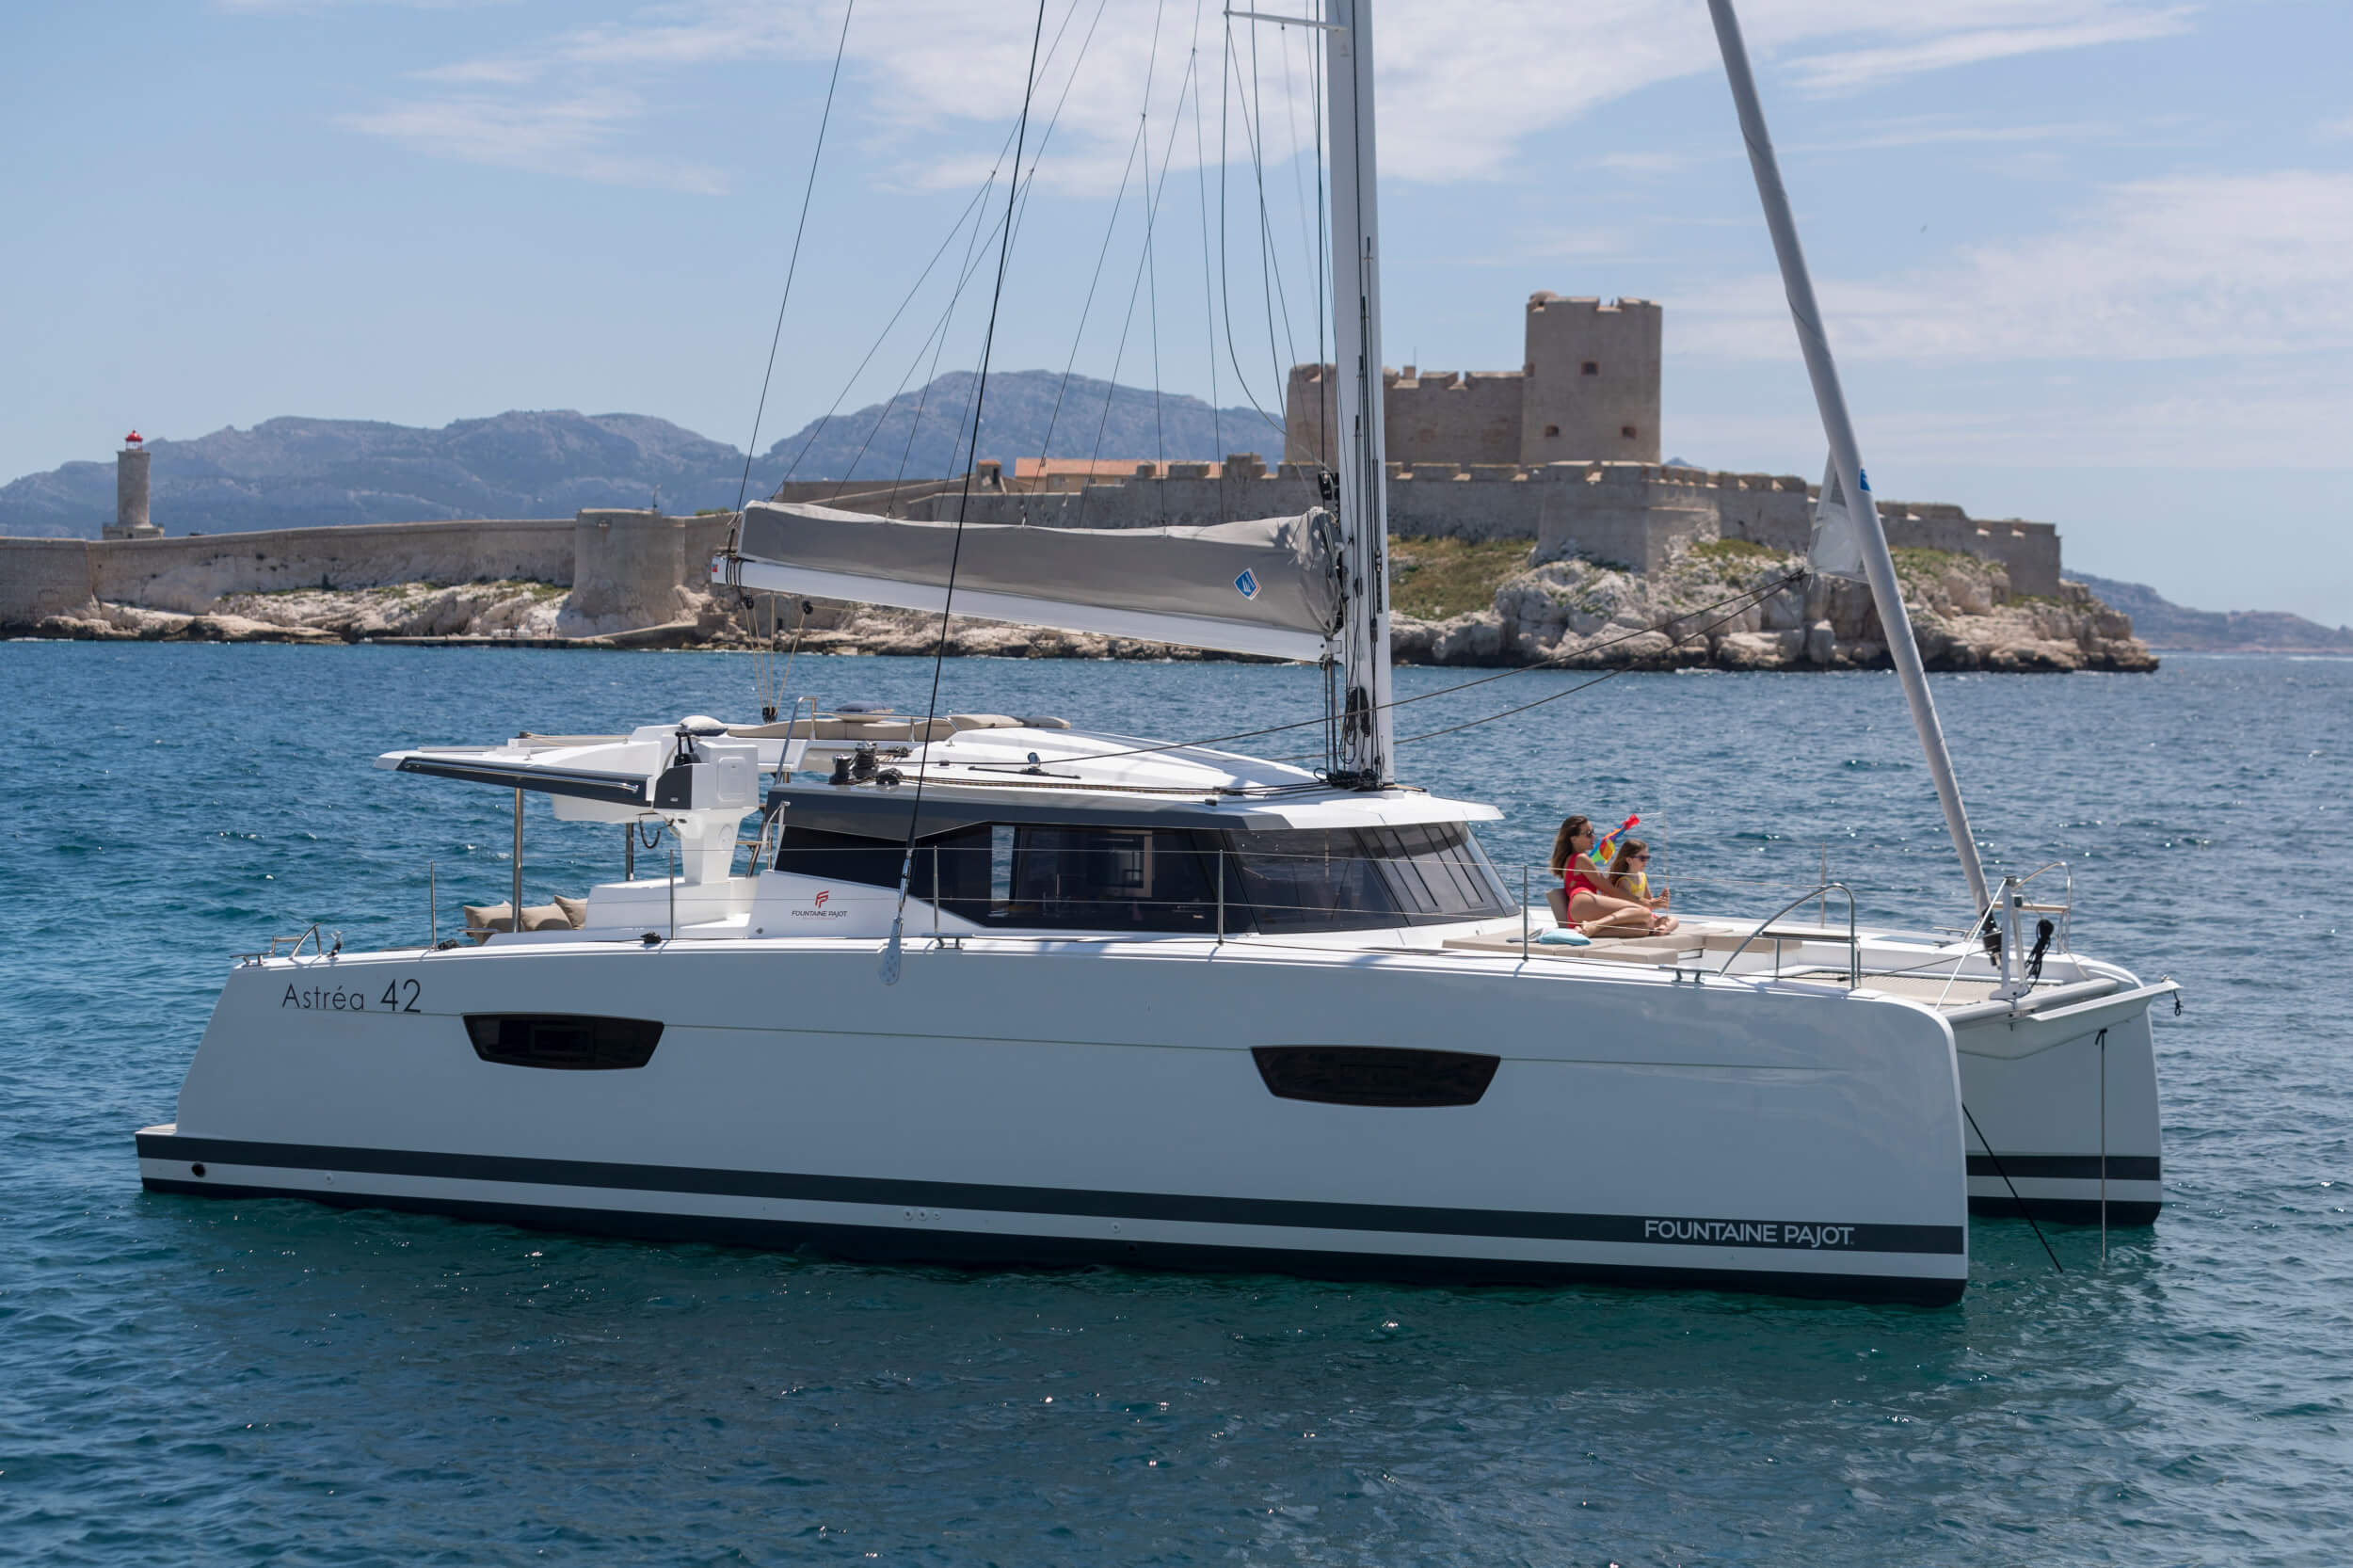 New Sail Catamaran for Sale 2019 Astrea 42